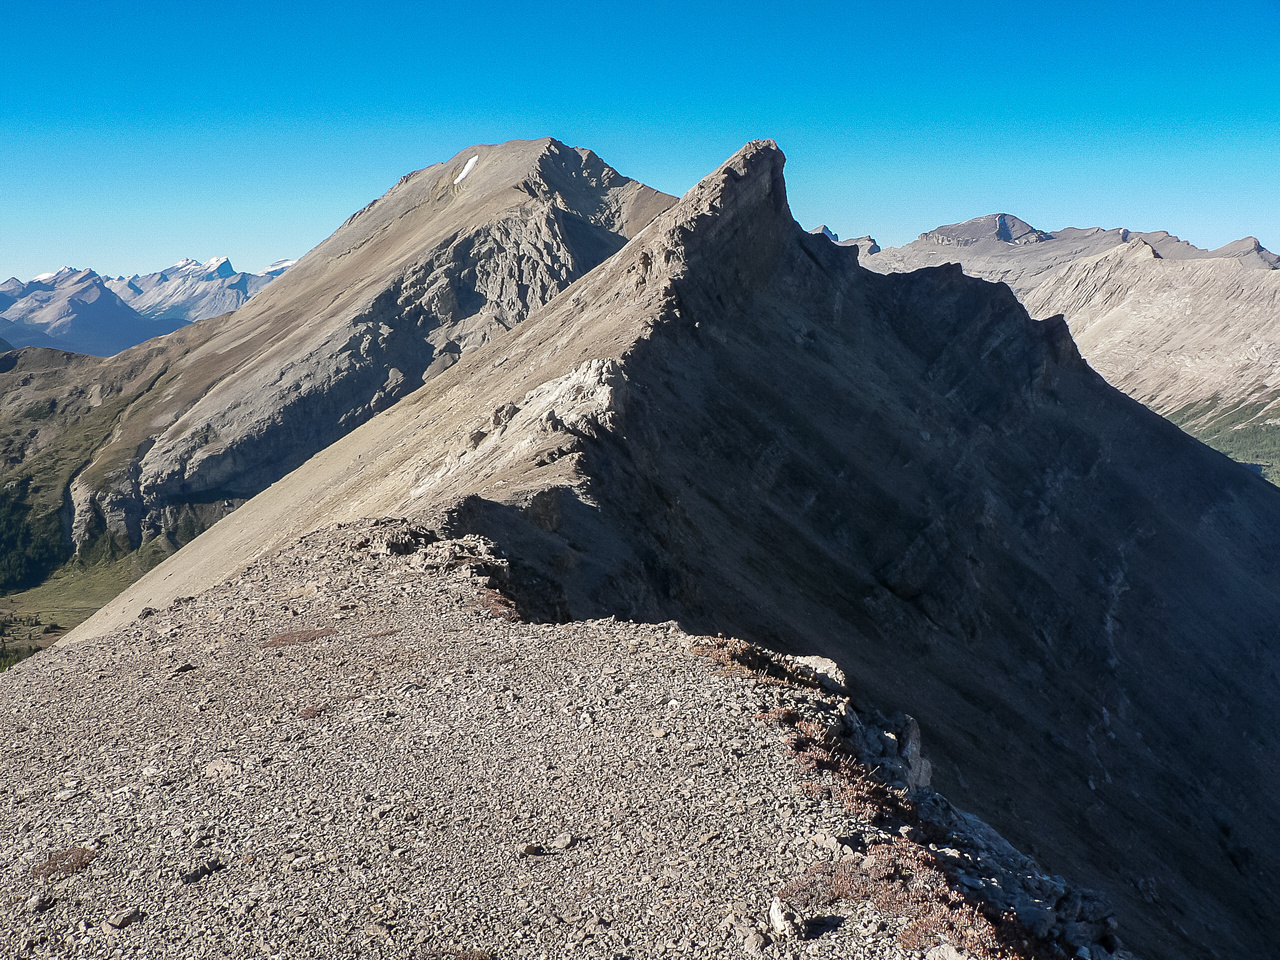 Views to the north summit of Brachiopod with Fossil in the bg.